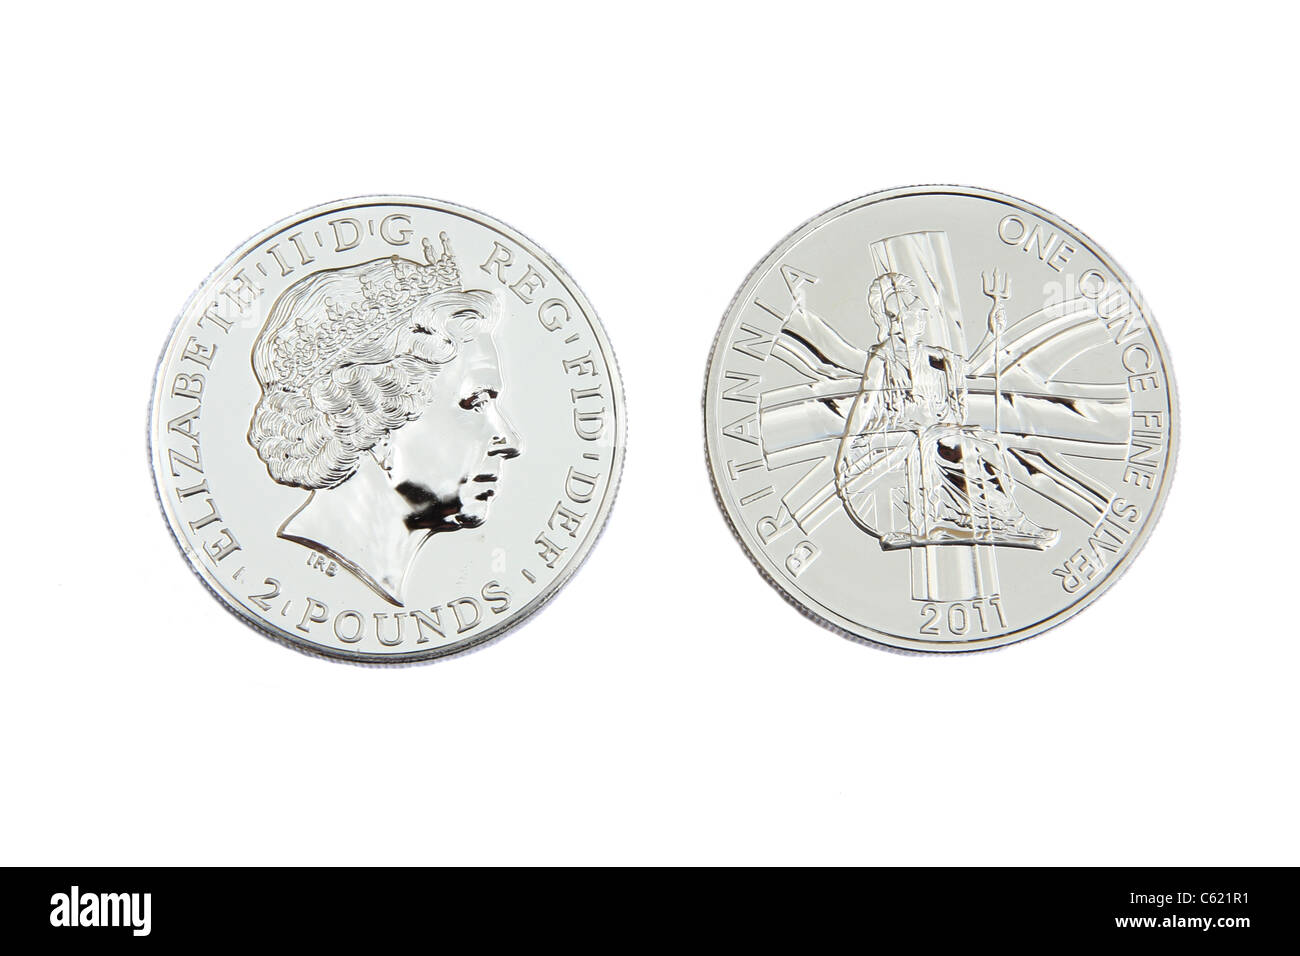 British Silver, the front and back of a one ounce silver coin. - Stock Image